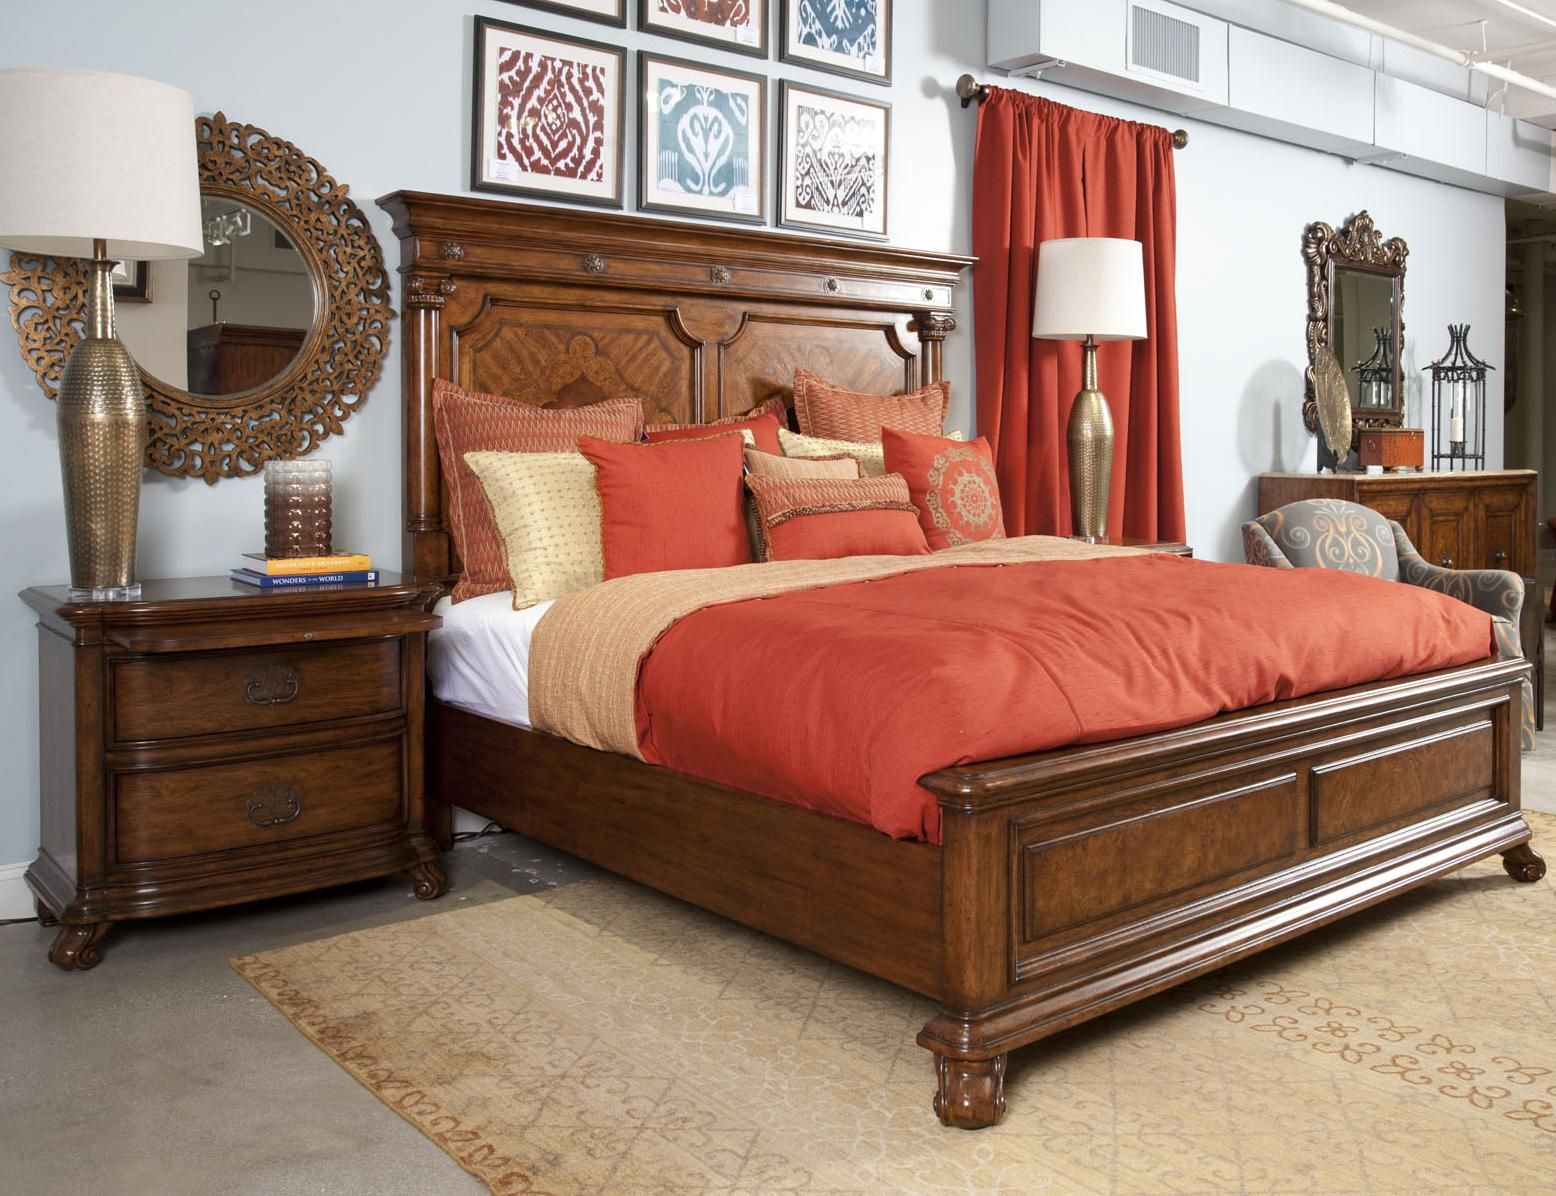 thomasville furniture rivage king panel bed furniture pinterest panel bed thomasville furniture and king